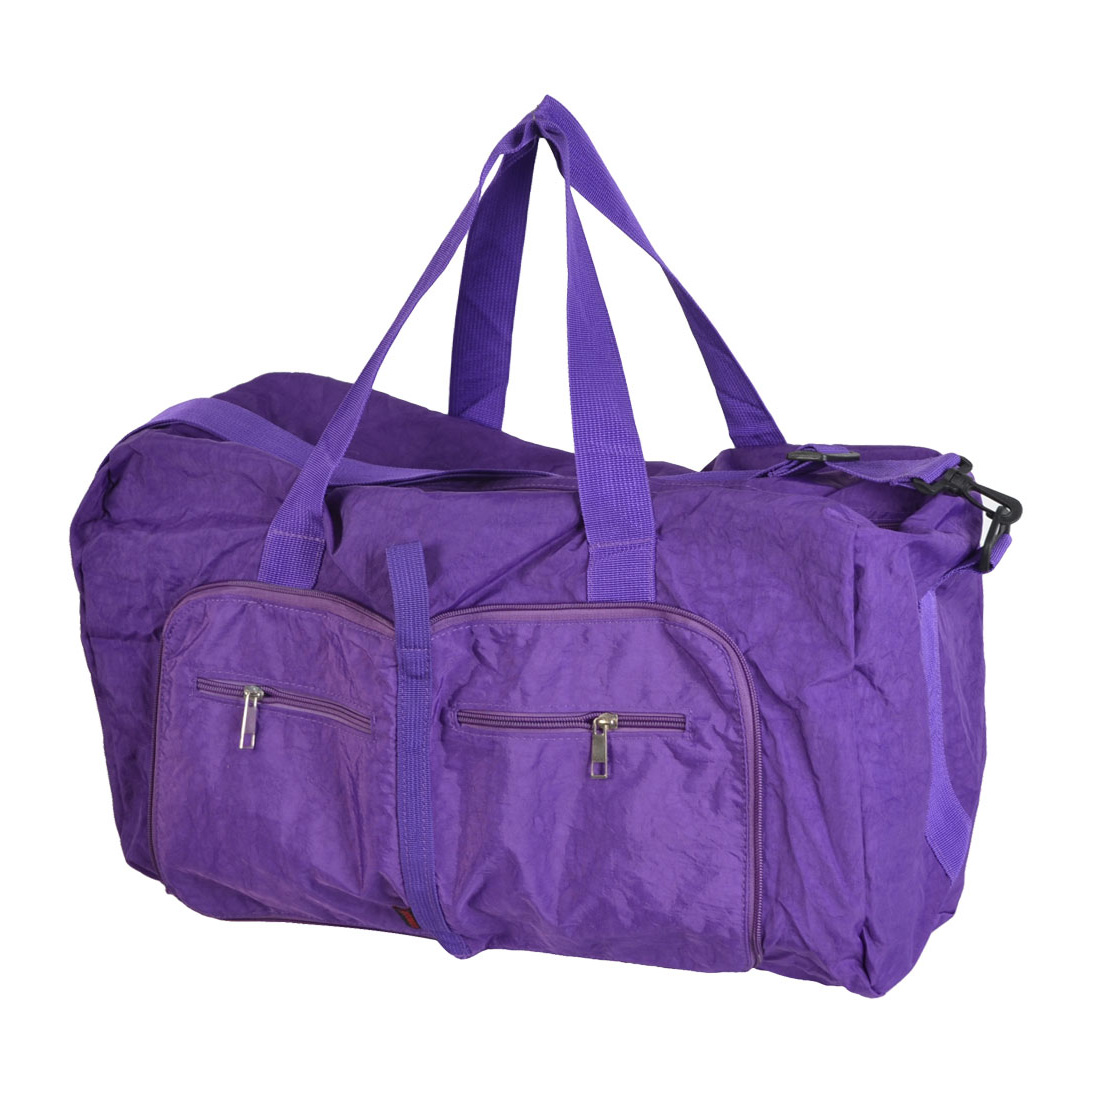 Traveling Household Foldable Pure Pattern Zipper Closure Purple Clothes Storage Hand Bag Holder Pouch 63x45x13cm